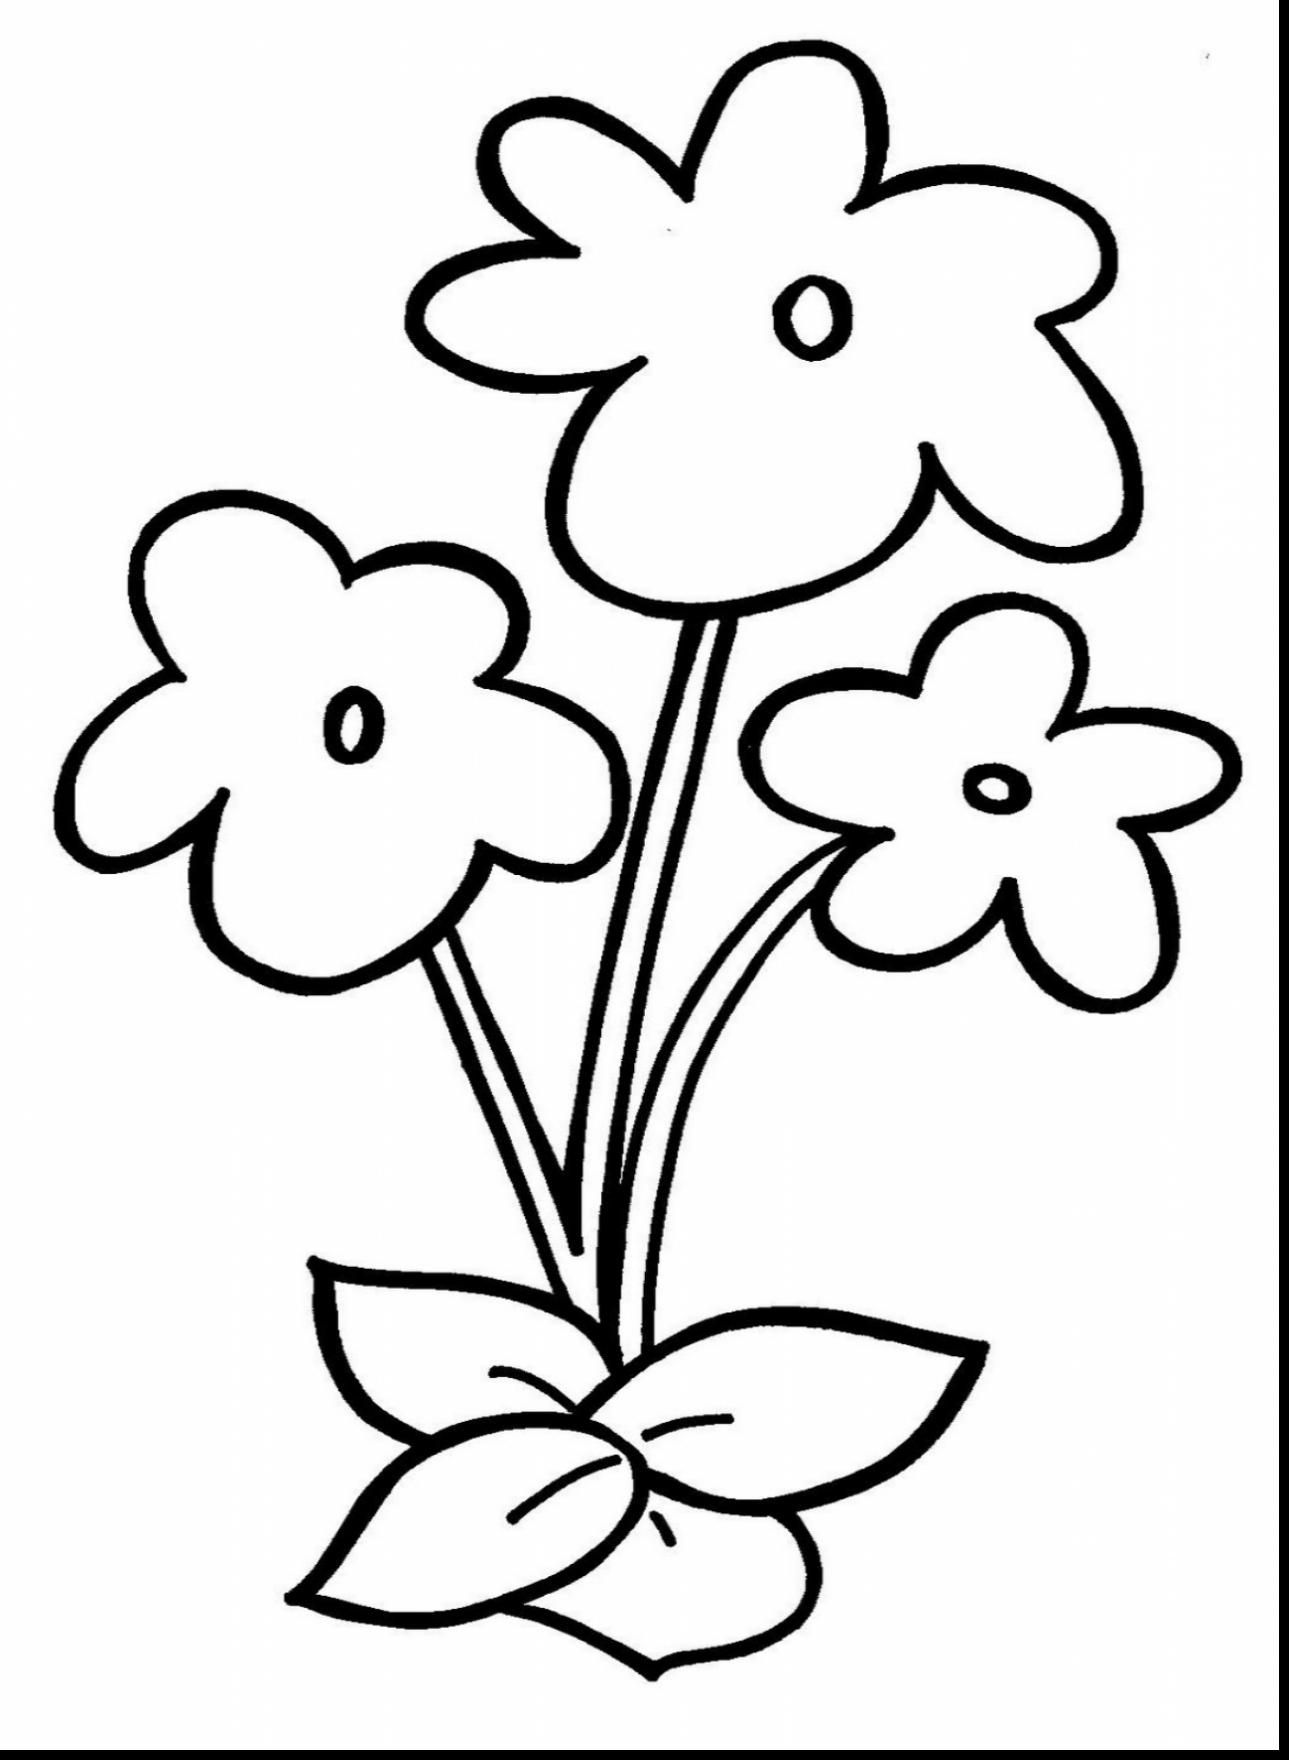 picture of a flower to color free easy to print flower coloring pages tulamama a flower of picture color to